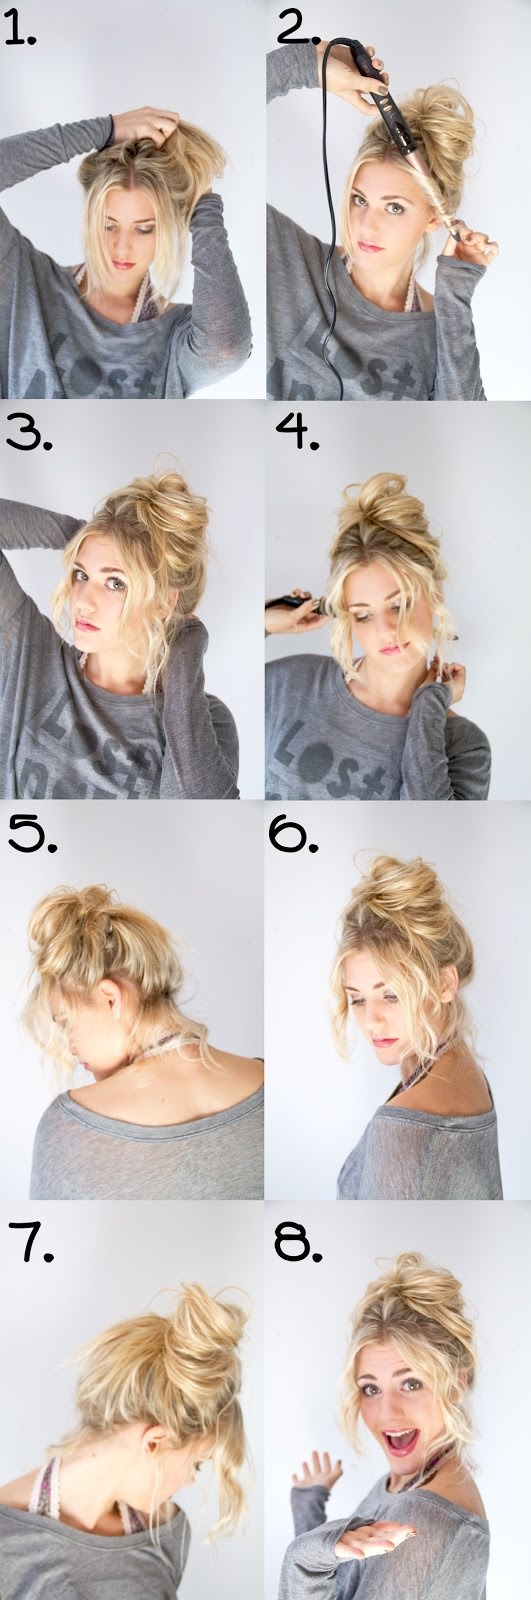 Or you can do a messy bun for a more tousled, laid-back look